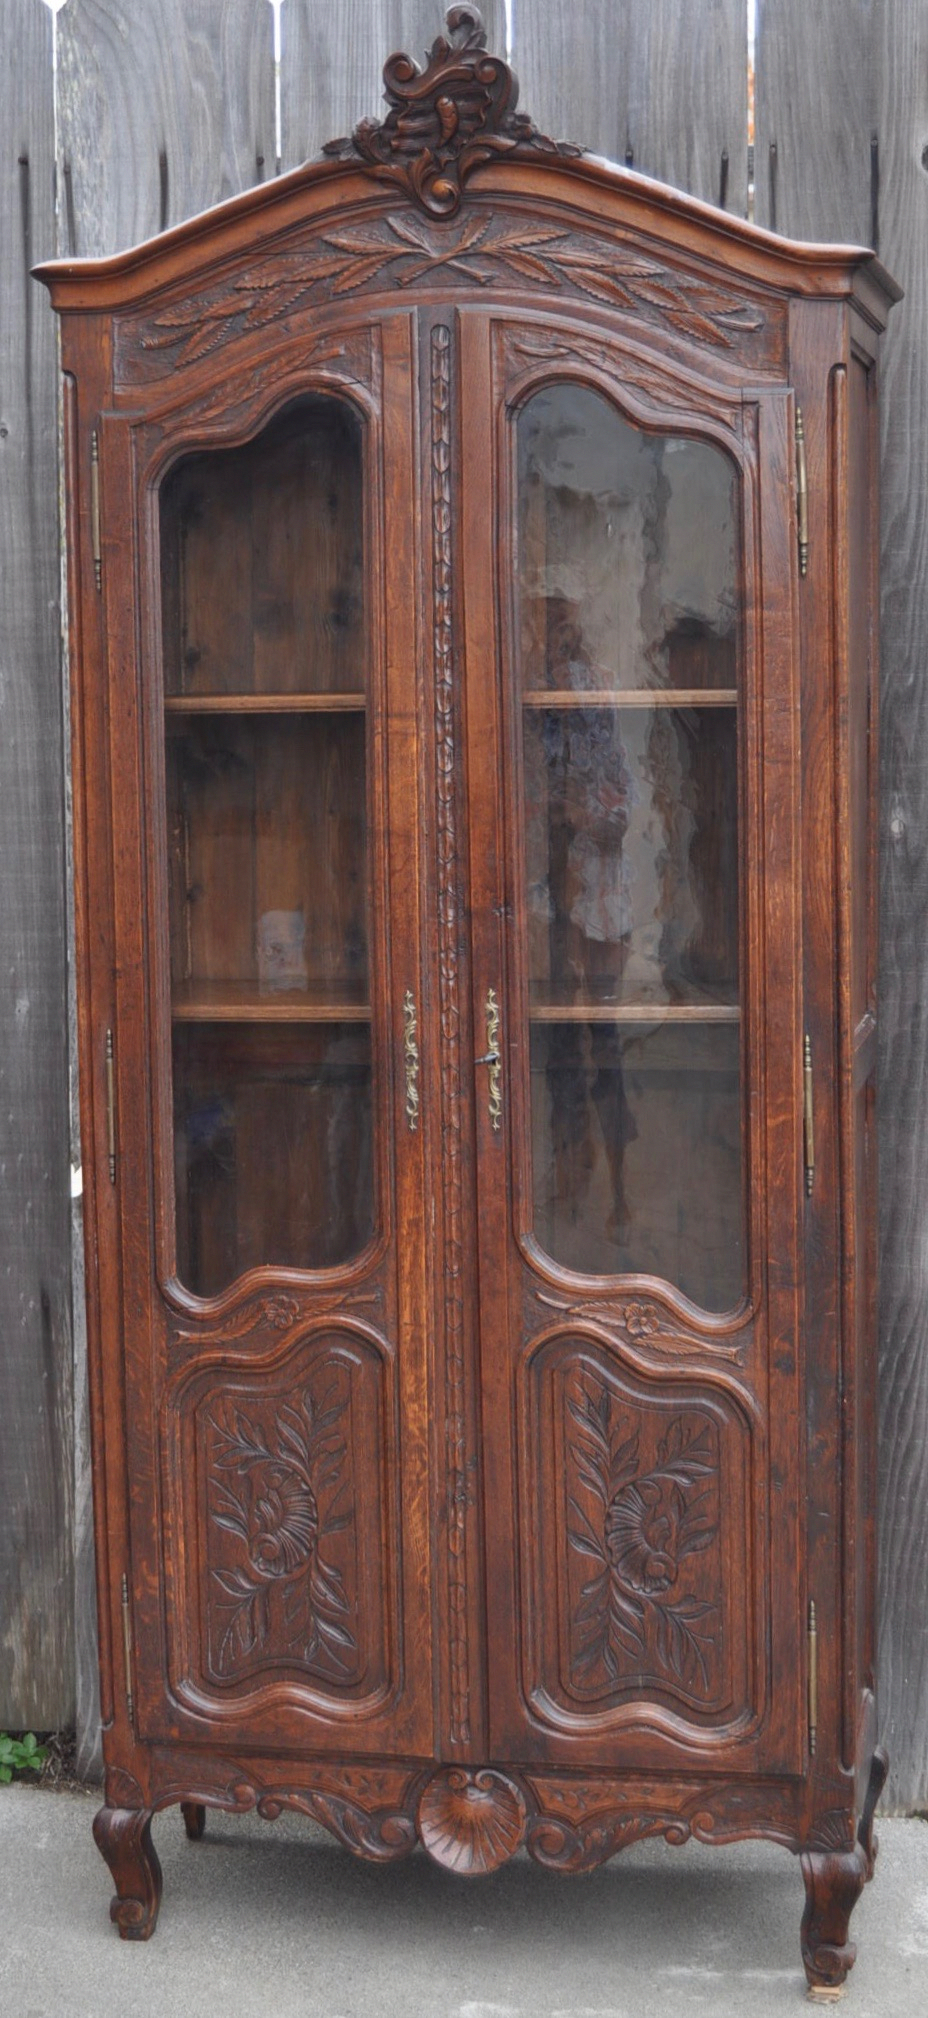 Antique Country French Armoire 1800's Chairish